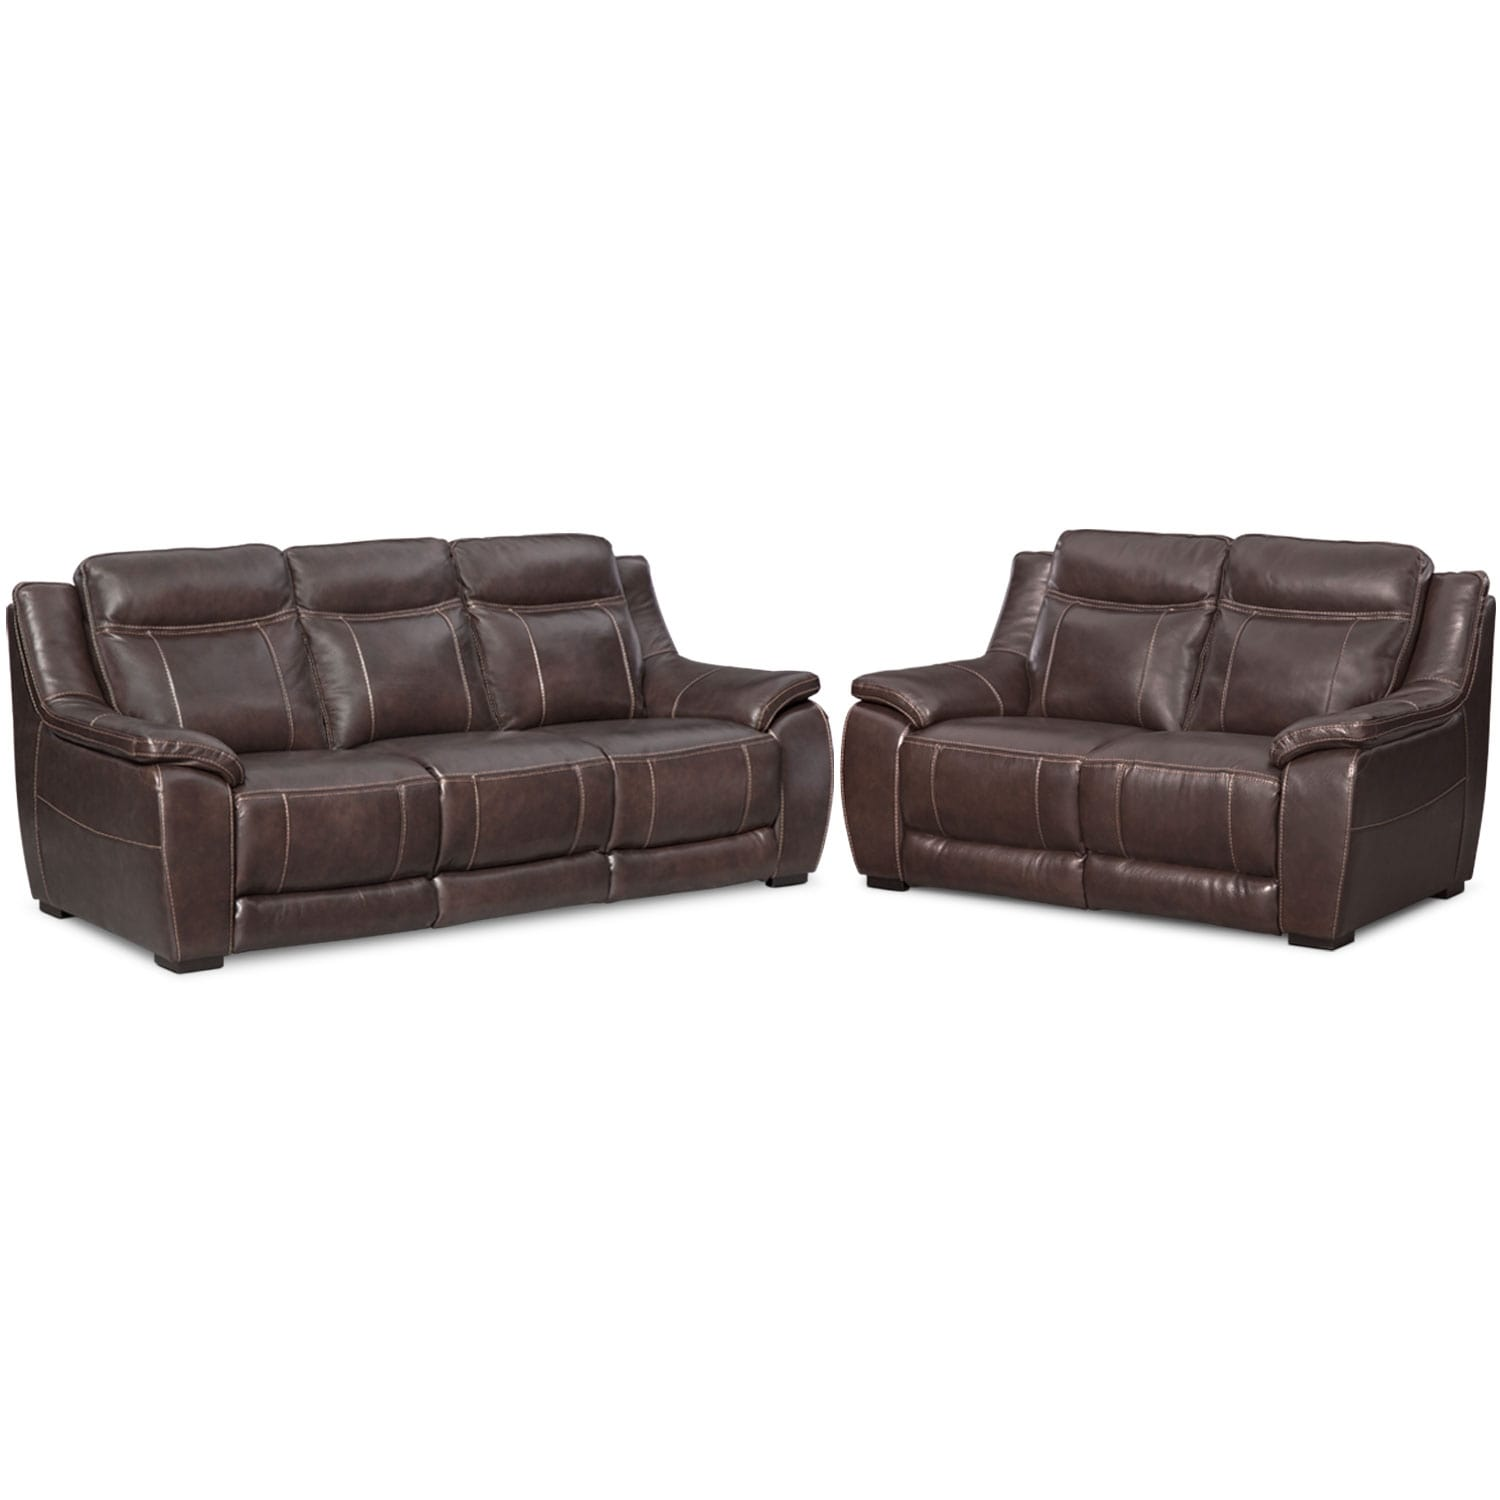 Living Room Furniture - Lido Brown 2 Pc. Living Room